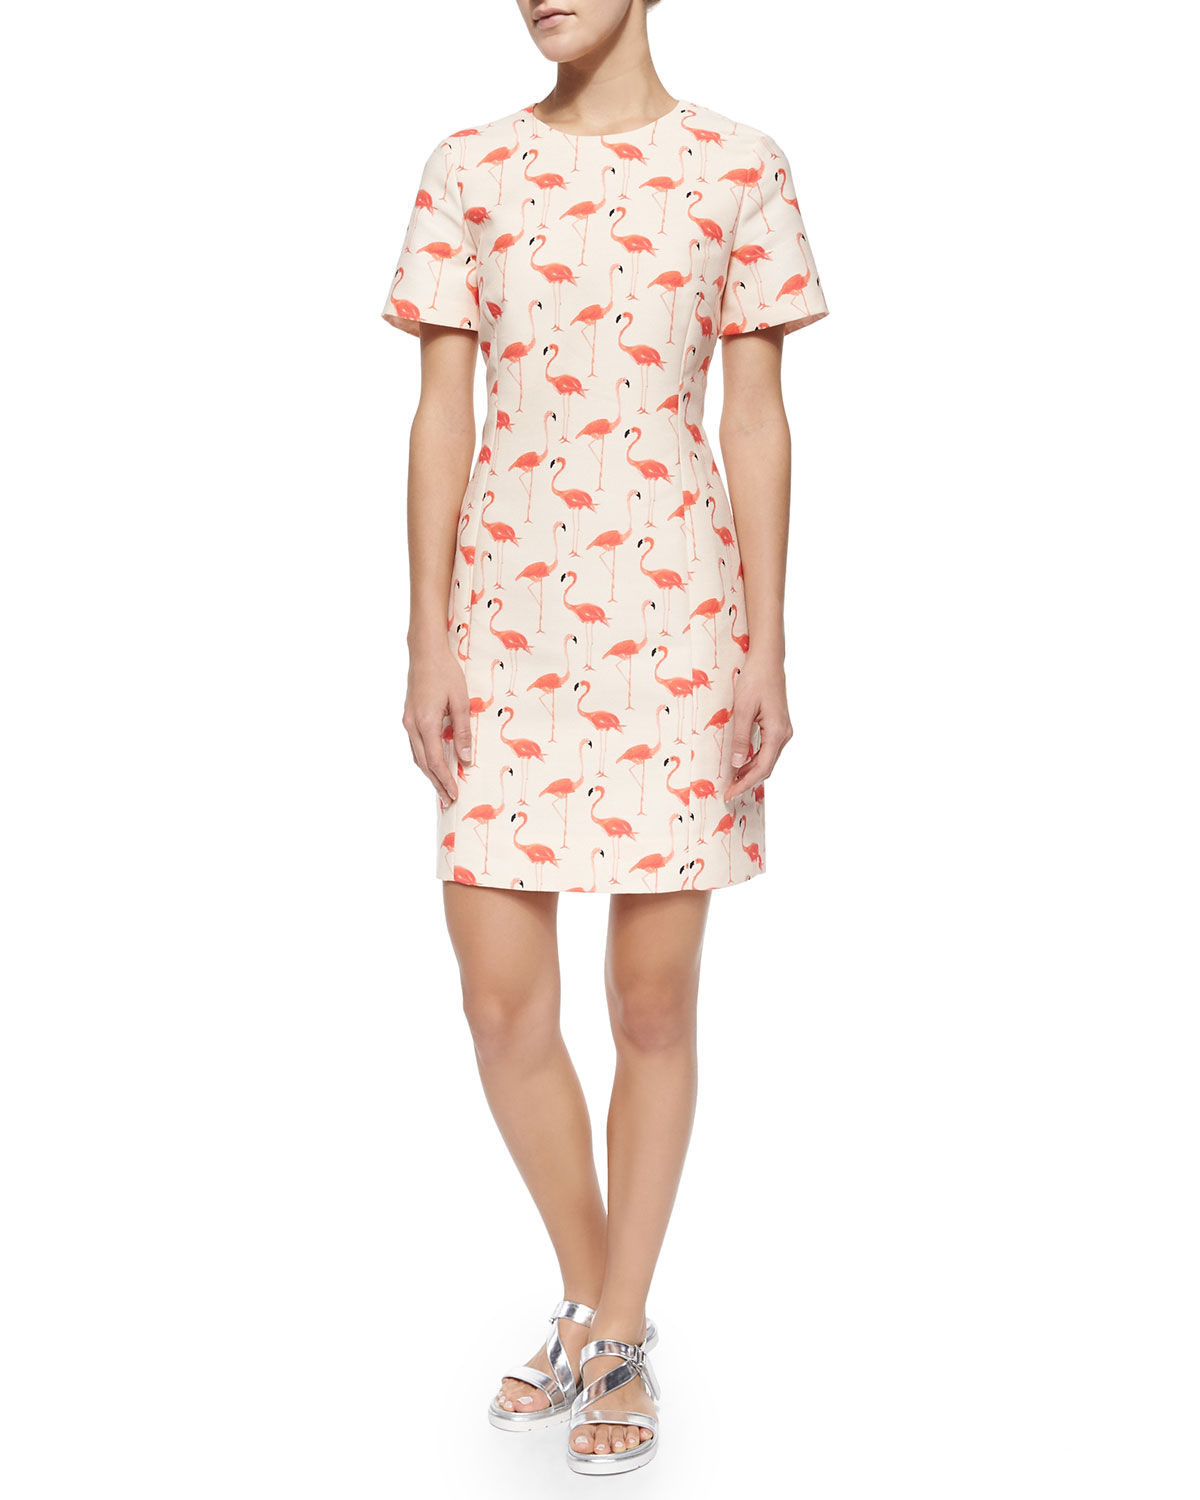 994f1edc35a2 kate spade new york short-sleeve flamingo-print sheath dress ...